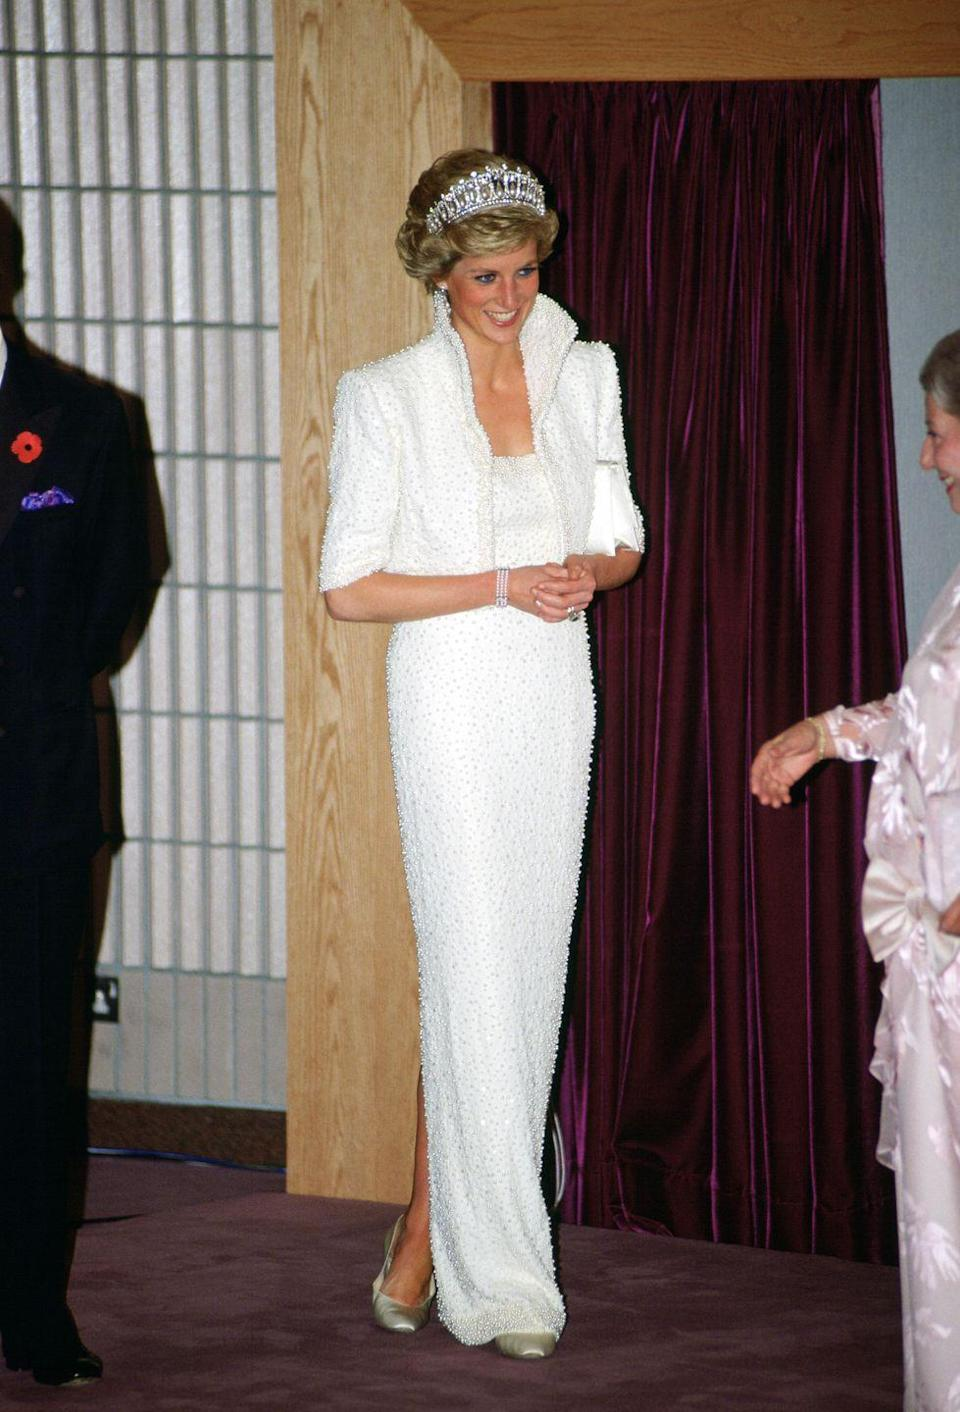 "<p>During a royal visit to Hong Kong, the Princess wore a white silk dress with pearl and sequined <a href=""https://collections.vam.ac.uk/item/O130882/the-elvis-dress-state-evening-ensemble-walker-catherine/"" rel=""nofollow noopener"" target=""_blank"" data-ylk=""slk:detailing by Catherine Walker"" class=""link rapid-noclick-resp"">detailing by Catherine Walker</a> that is now called ""The Elvis Dress"" by many. </p>"